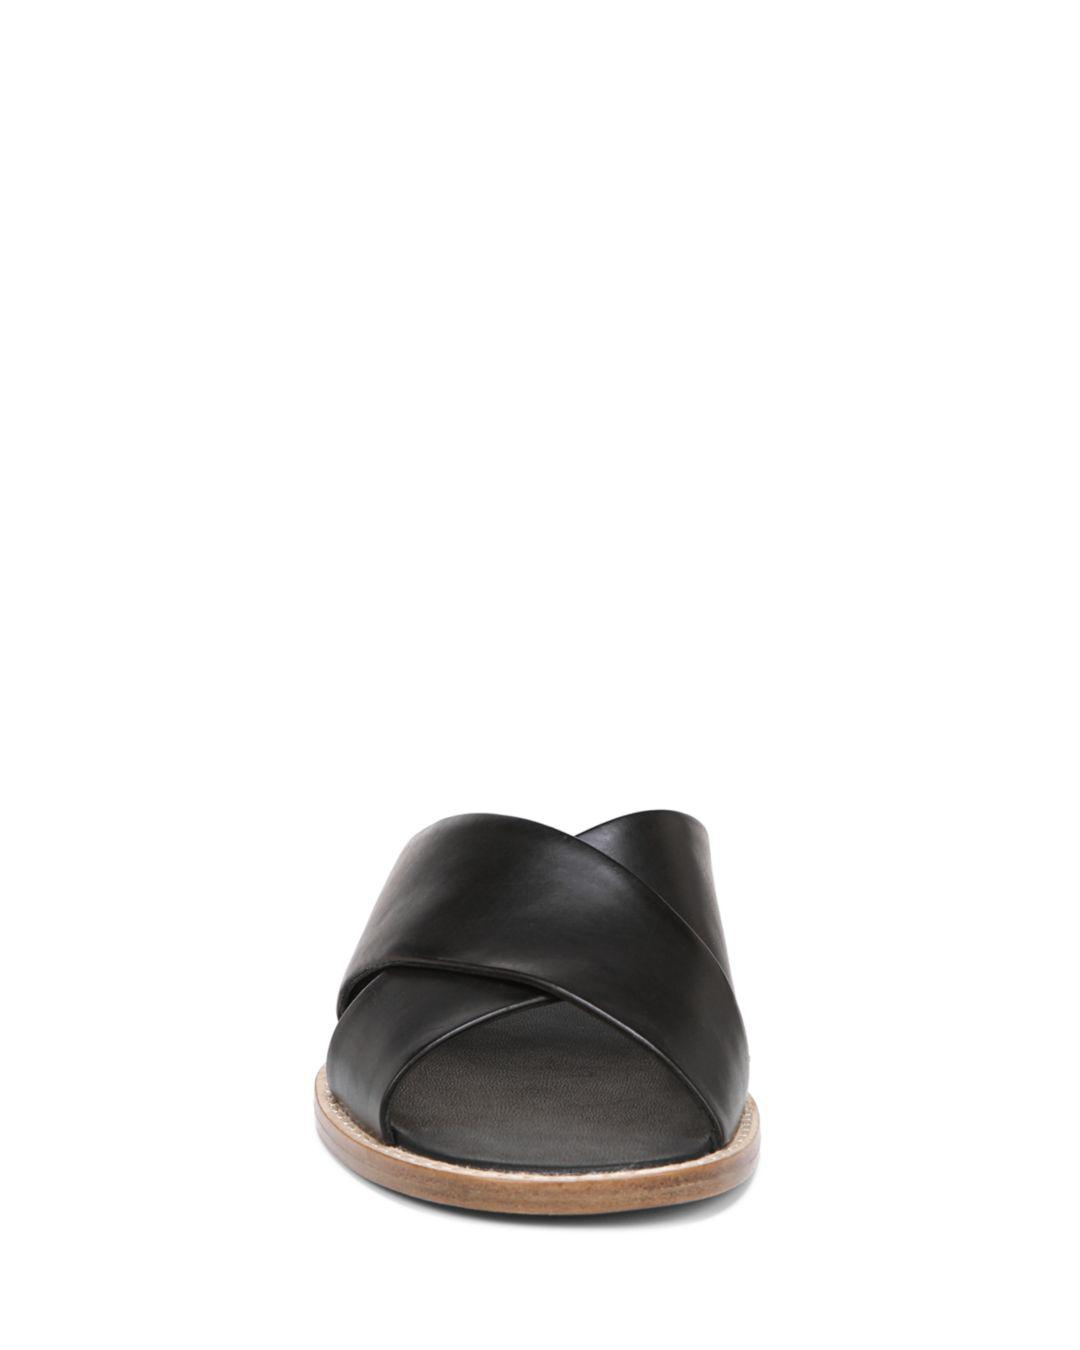 ad808ffffab Lyst - Vince Fairley Leather Wedge Sandals in Black - Save 41%